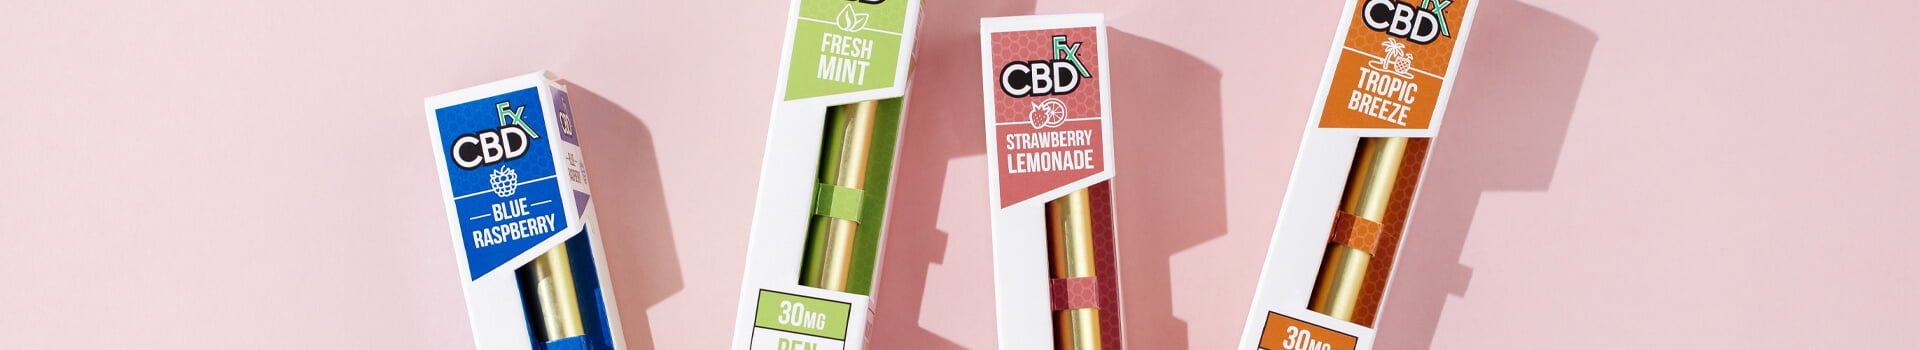 12 Reasons You'll Love Our CBD Vape Pens